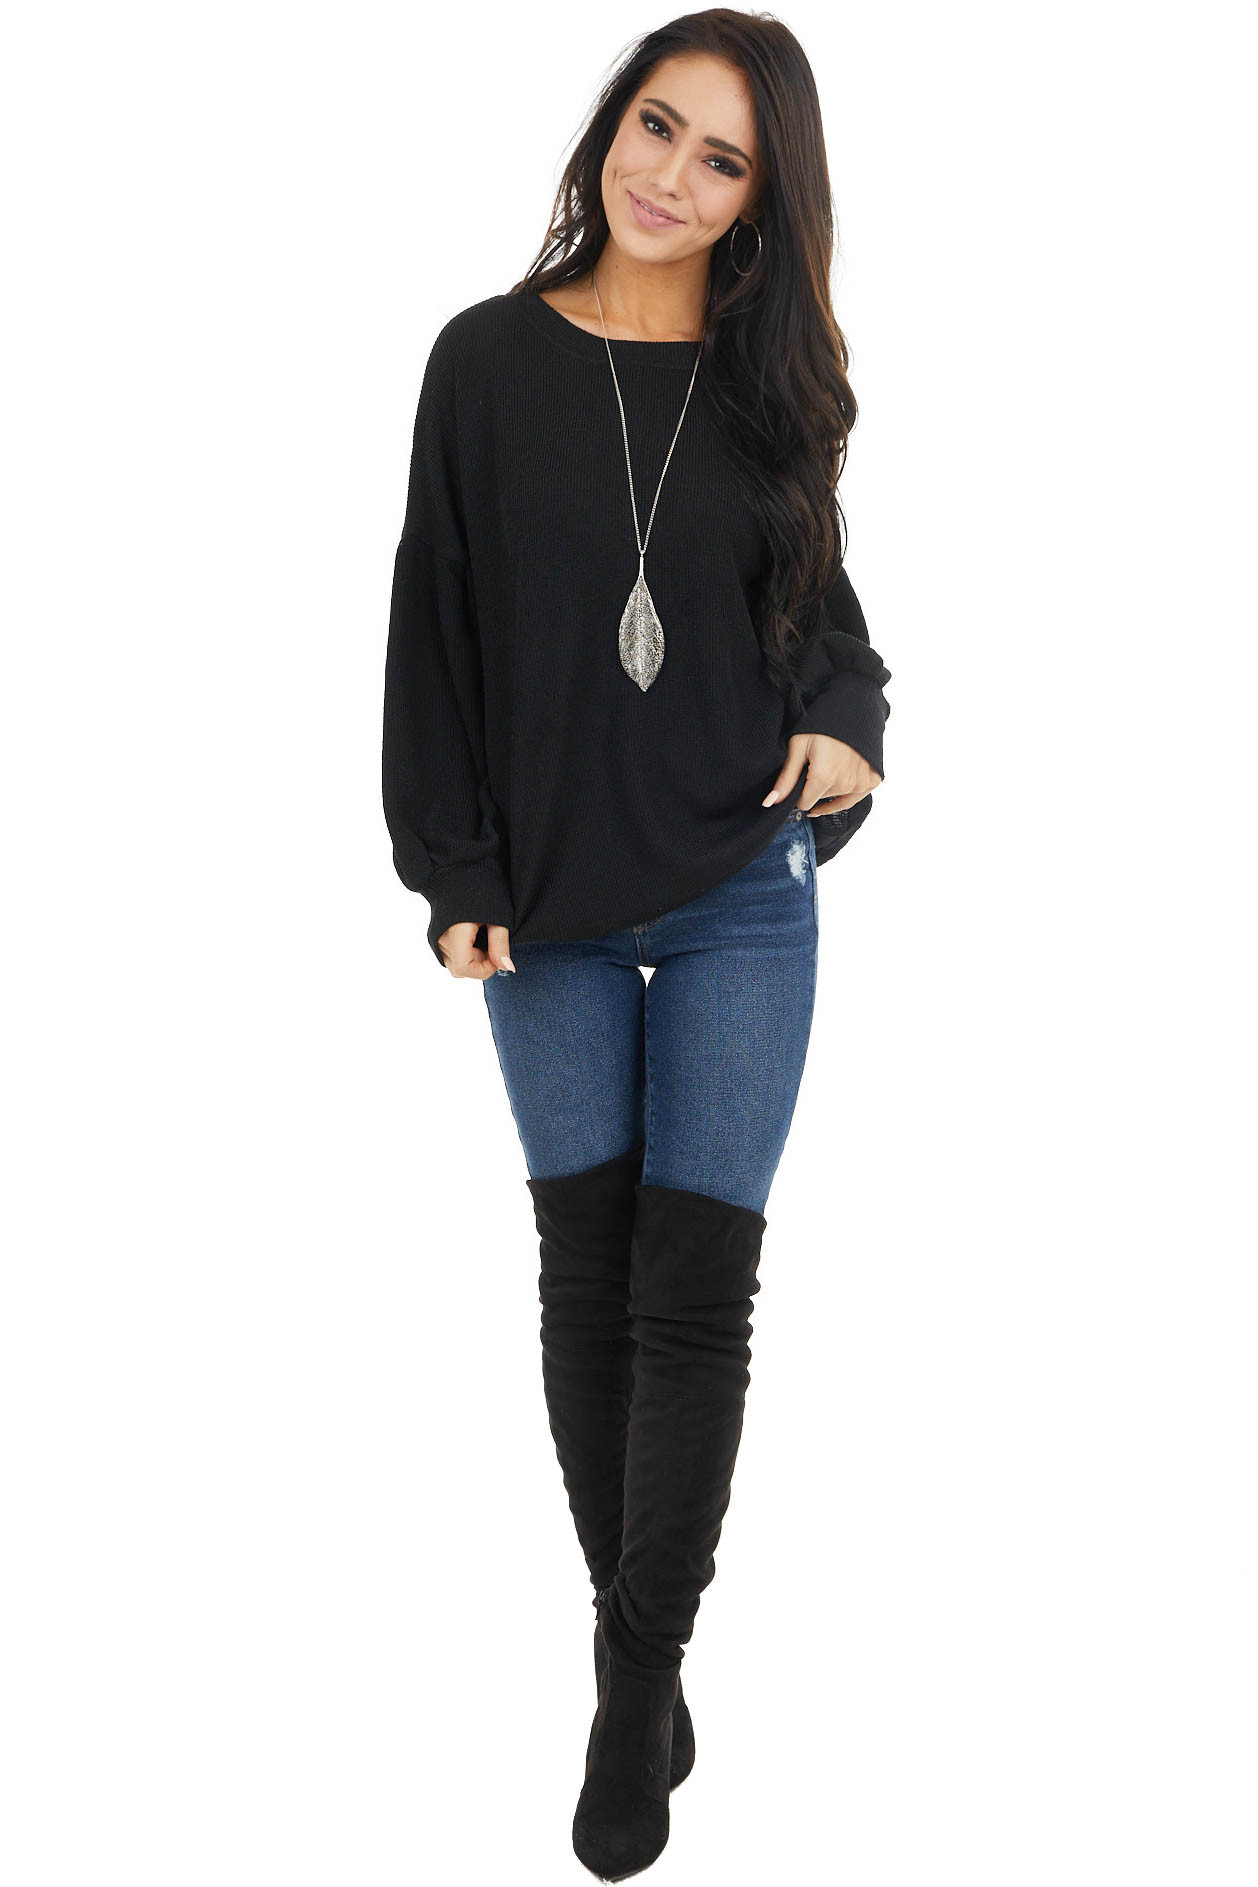 Black Stretchy Ribbed Knit Top with Long Bubble Sleeves